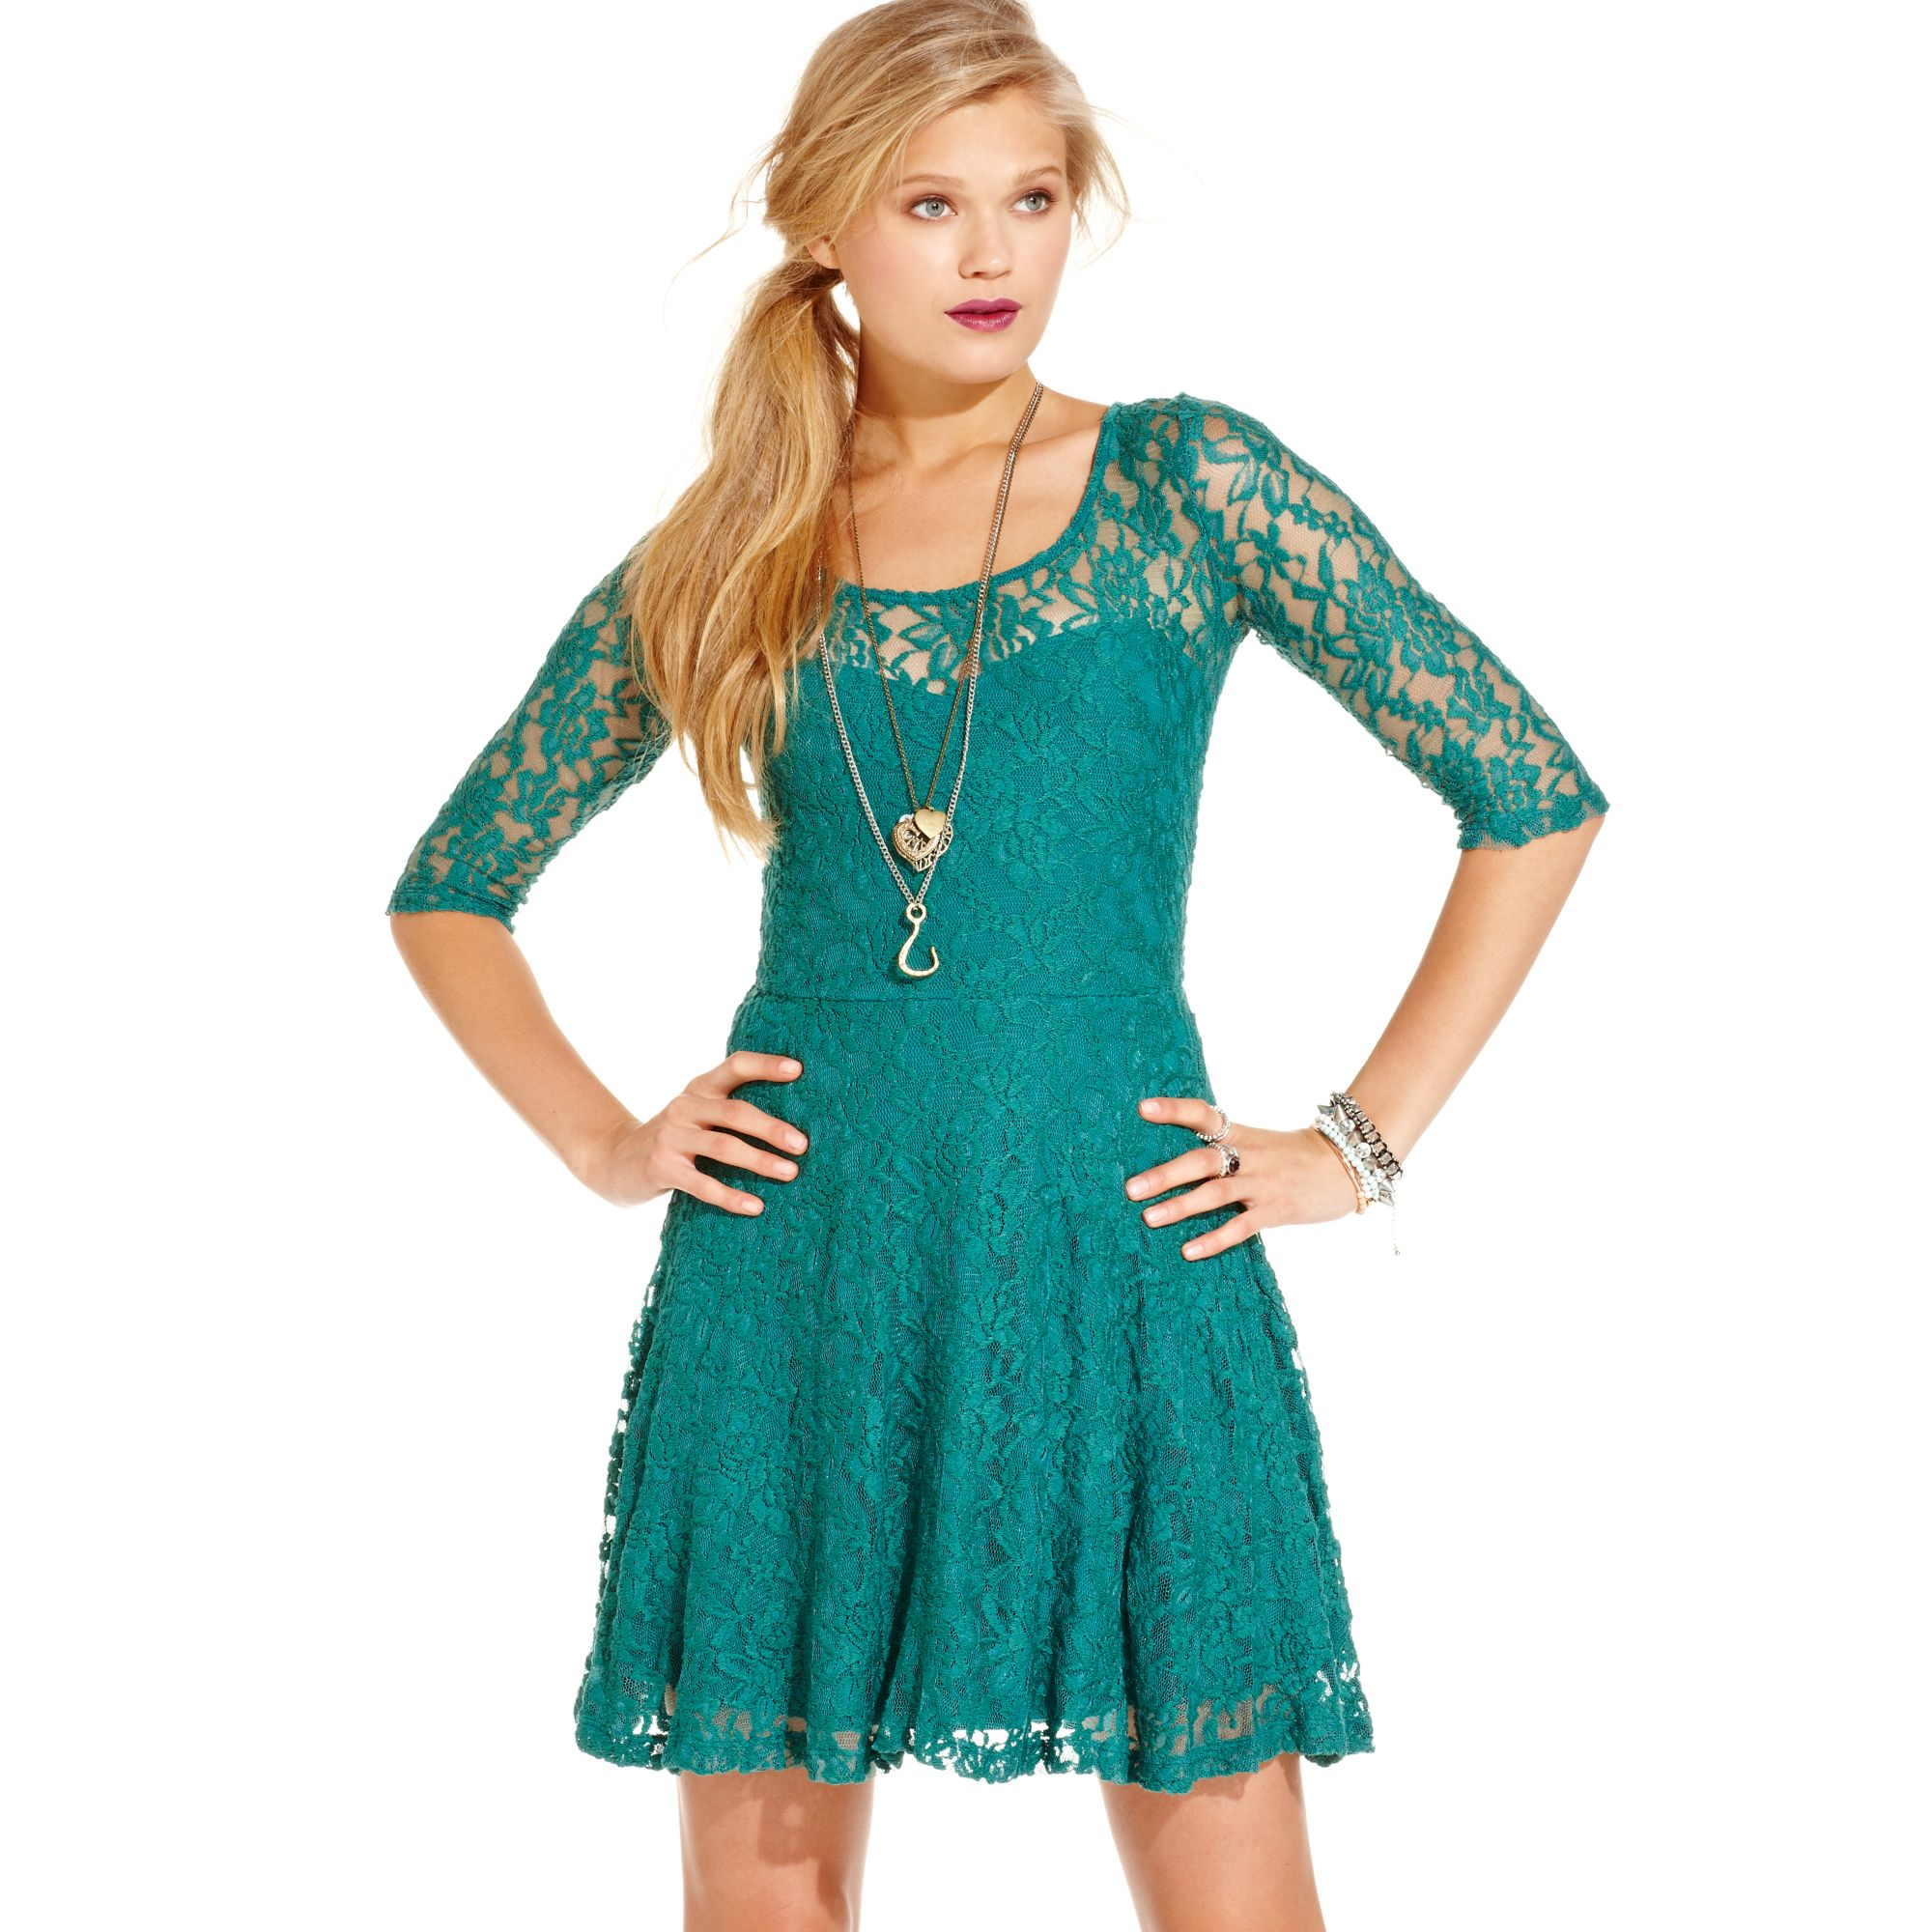 Lyst - Material Girl Lace Skater Dress in Green